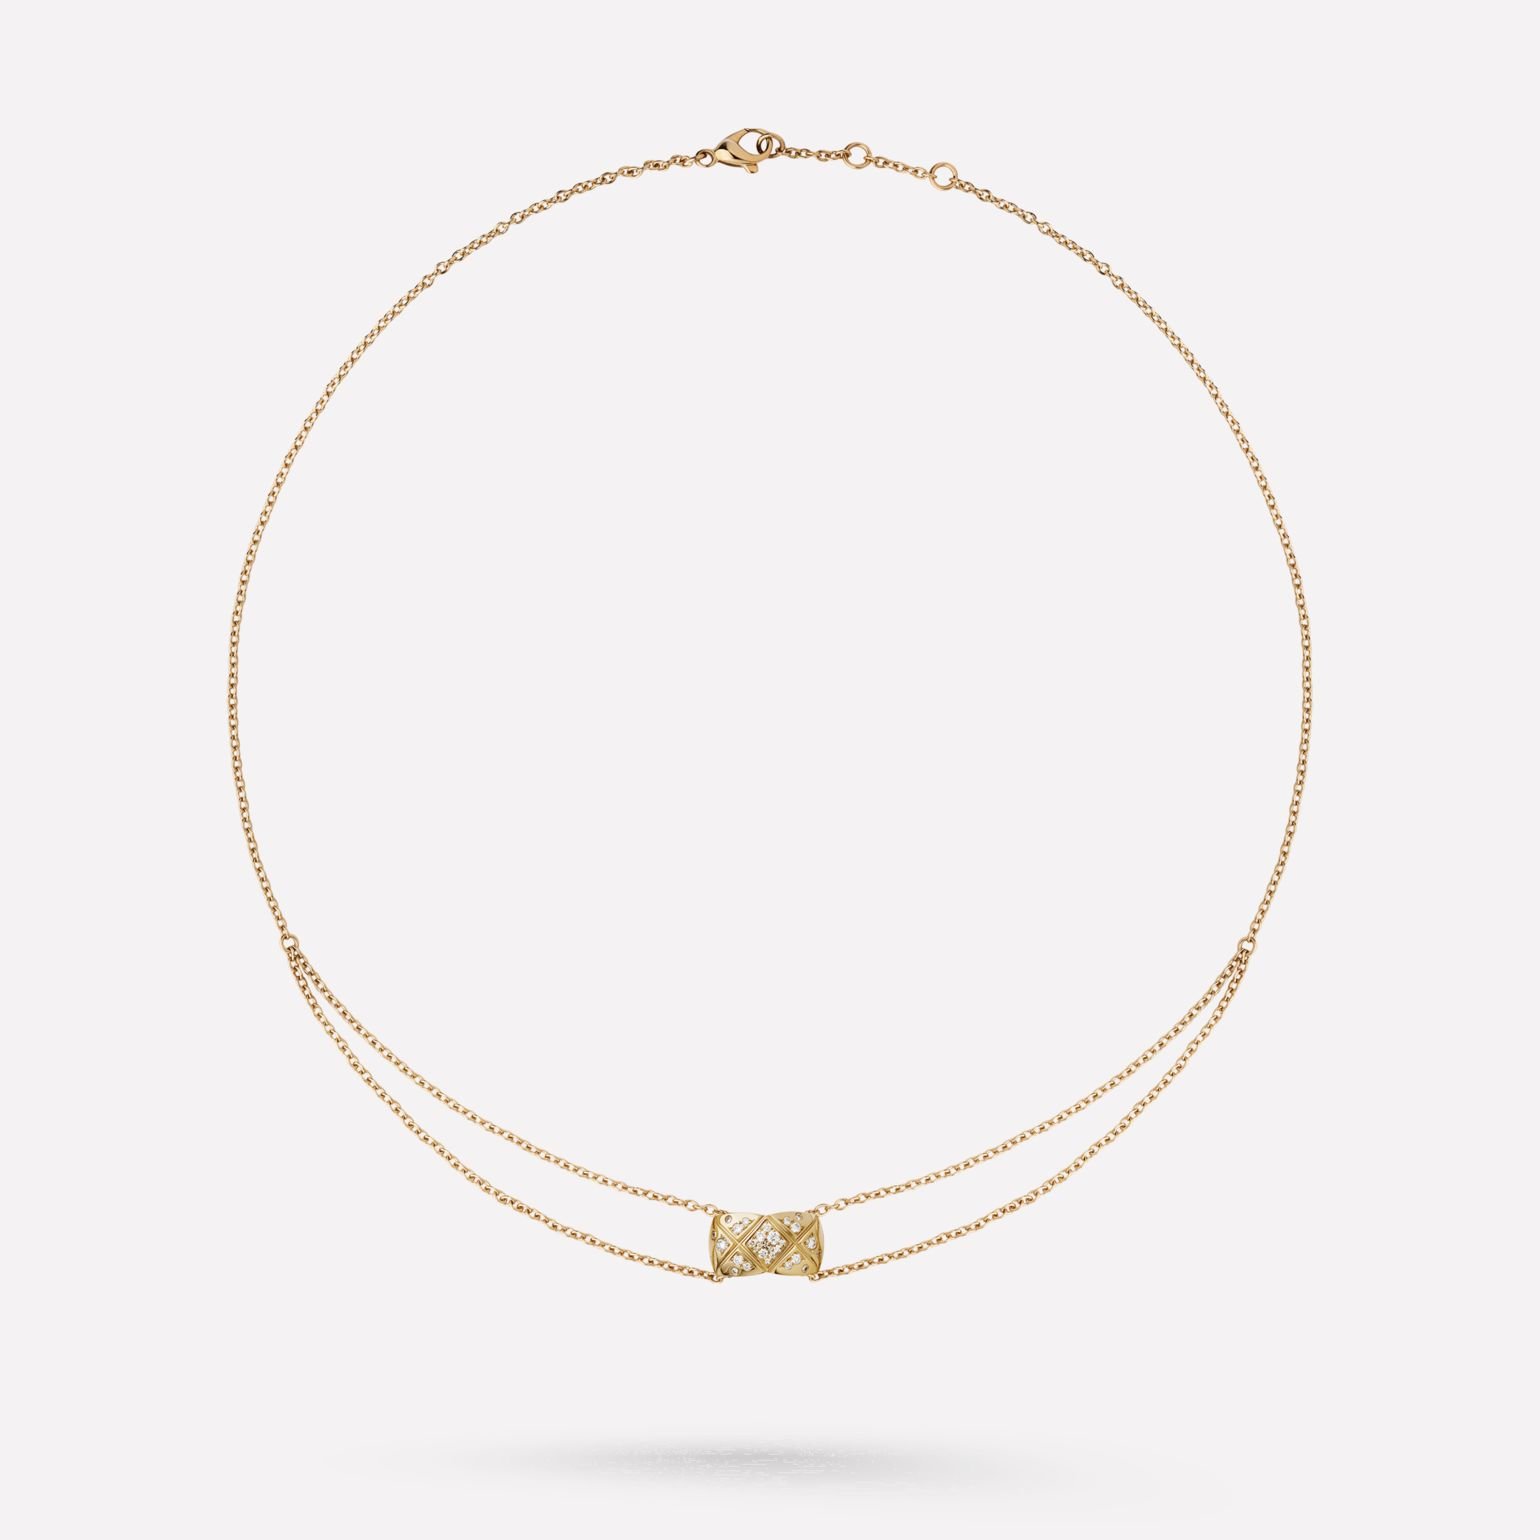 Coco Crush necklace Quilted motif necklace in 18K BEIGE GOLD and diamonds